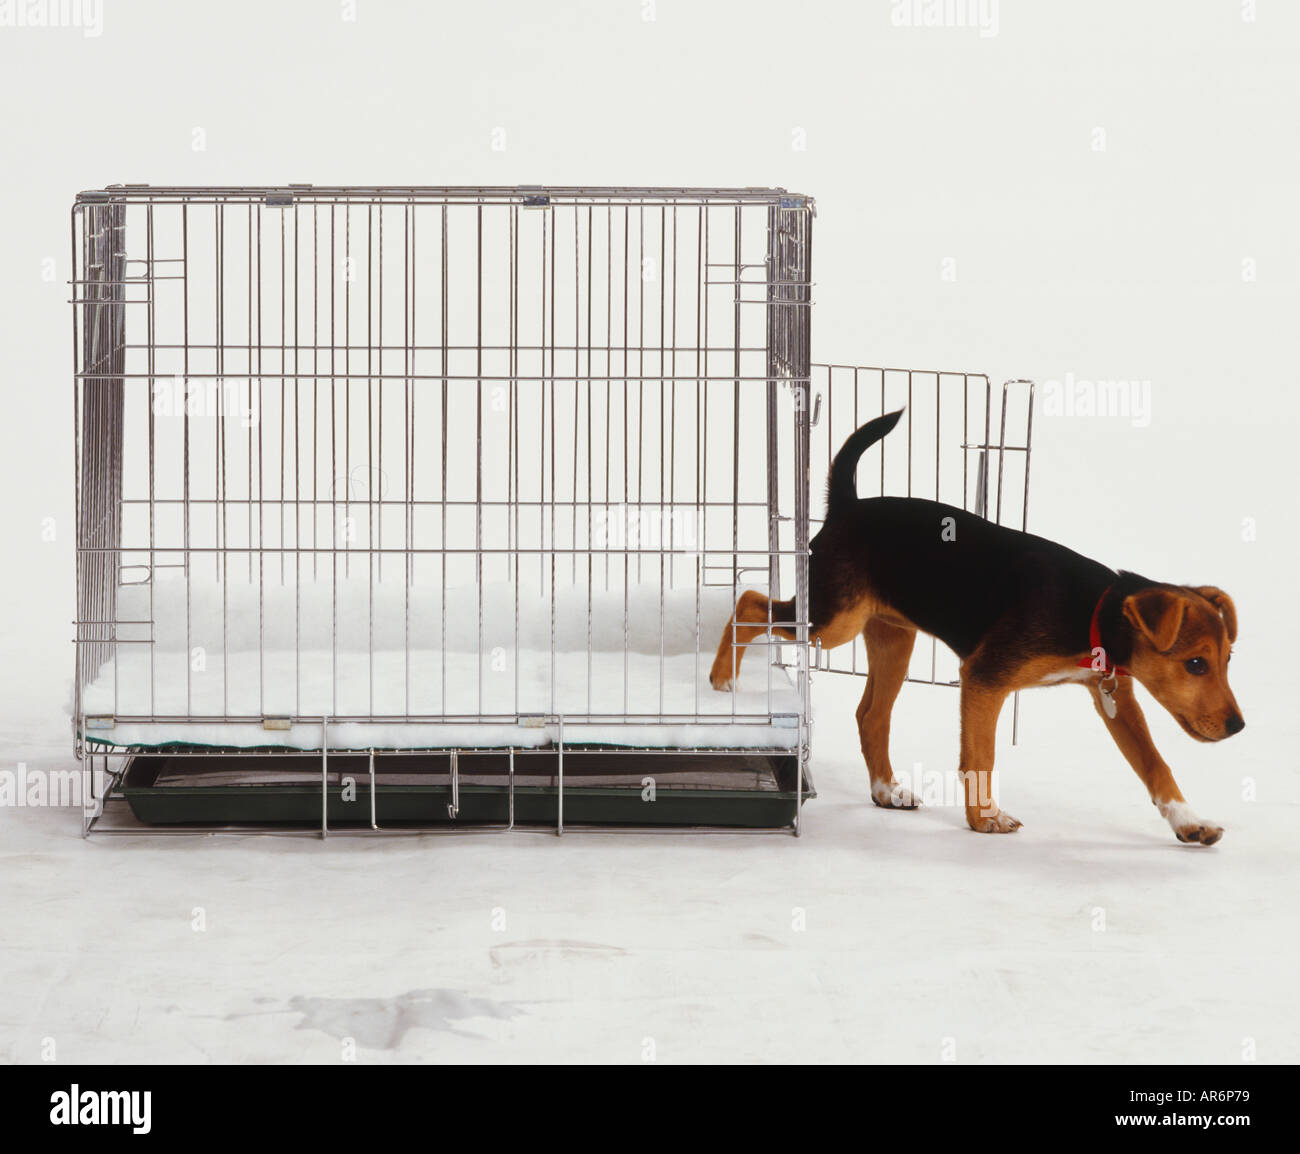 Puppy Cage Stock Photos & Puppy Cage Stock Images - Alamy